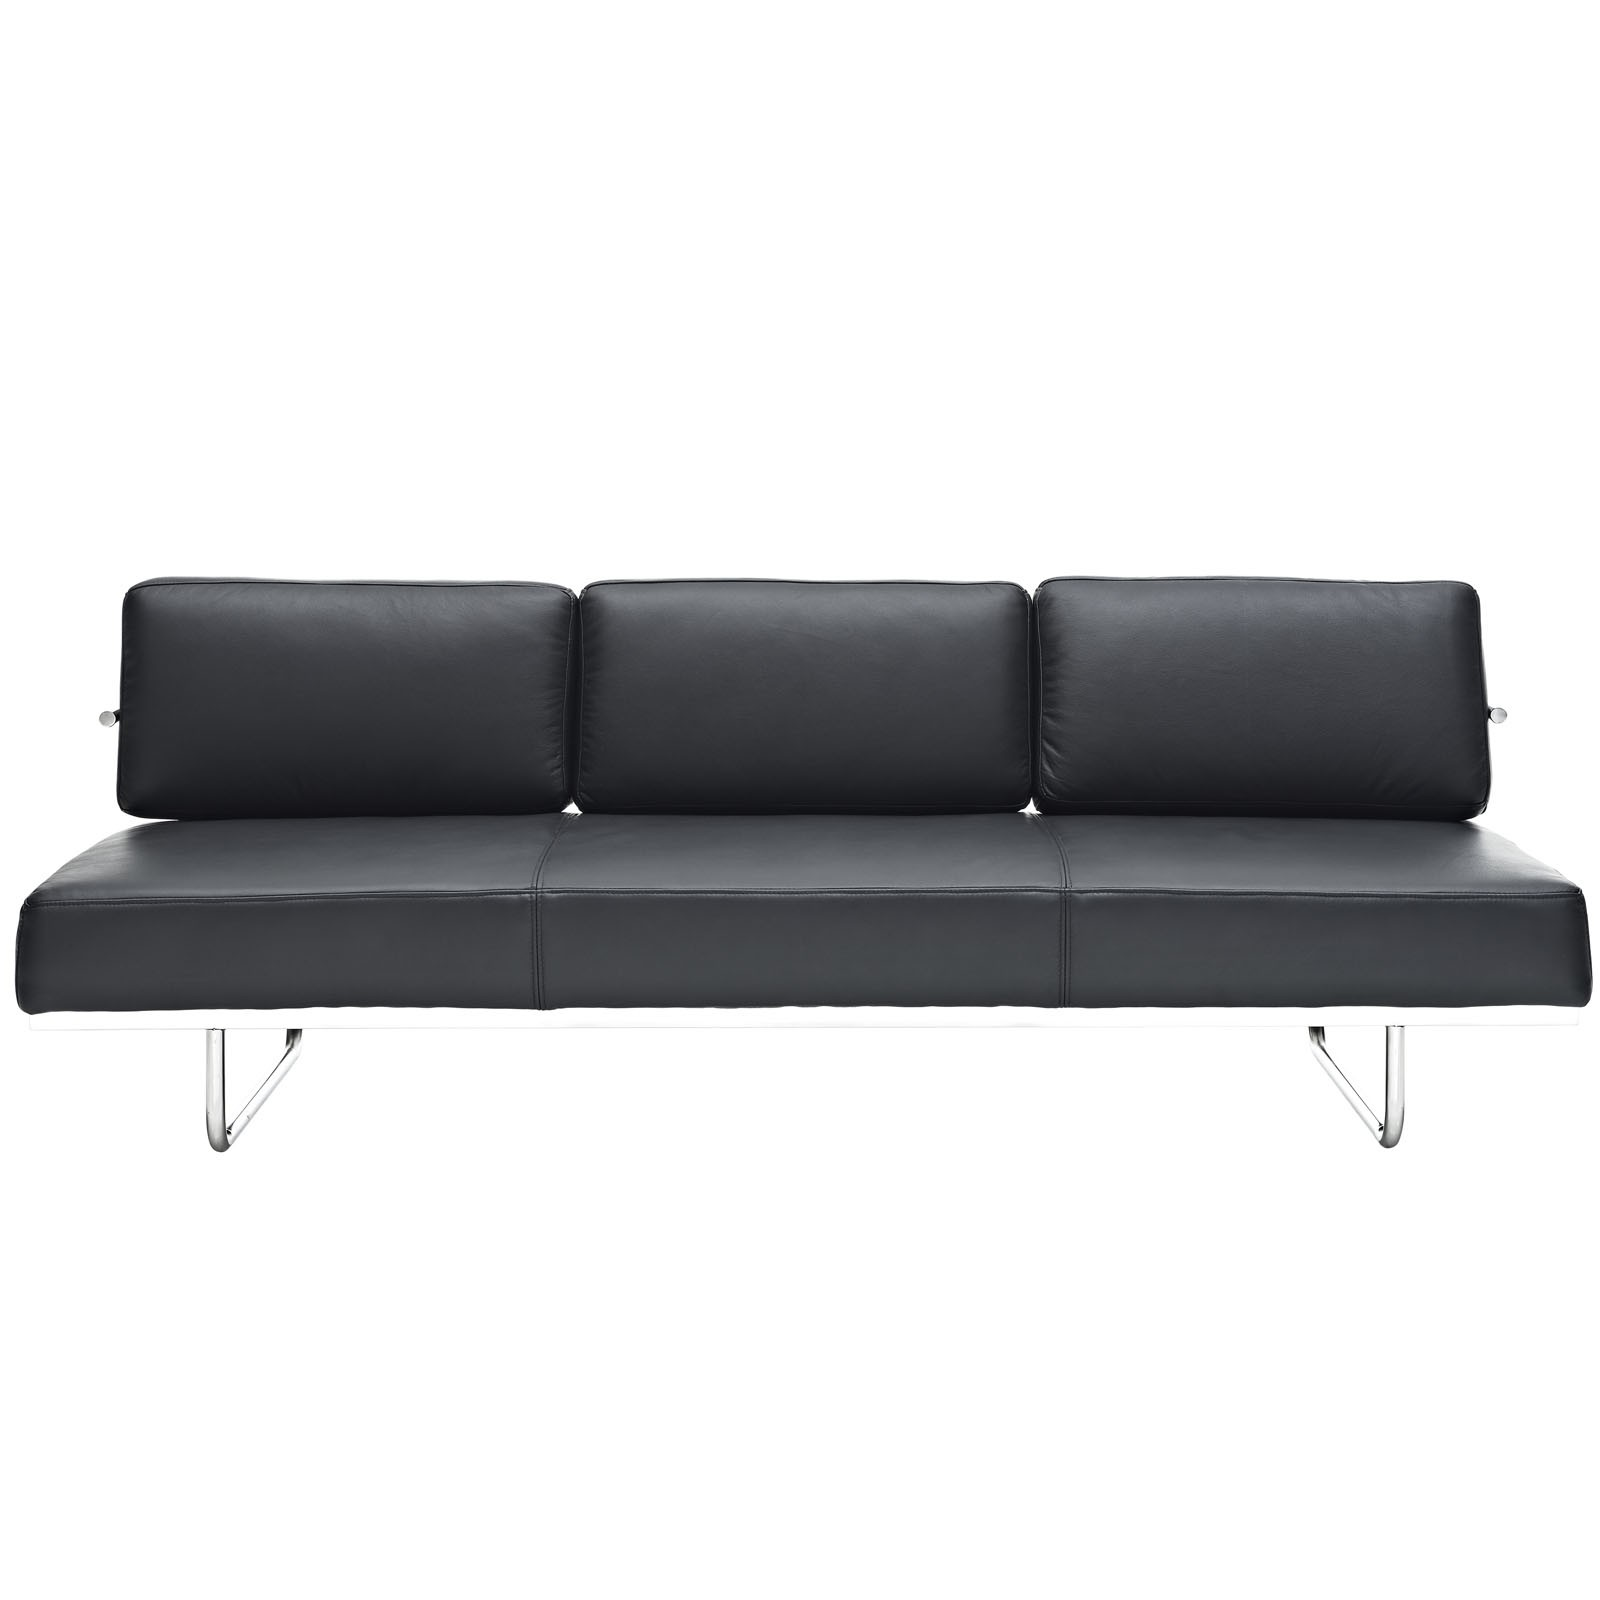 Le Corbusier Style Lc5 Sofa Daybed